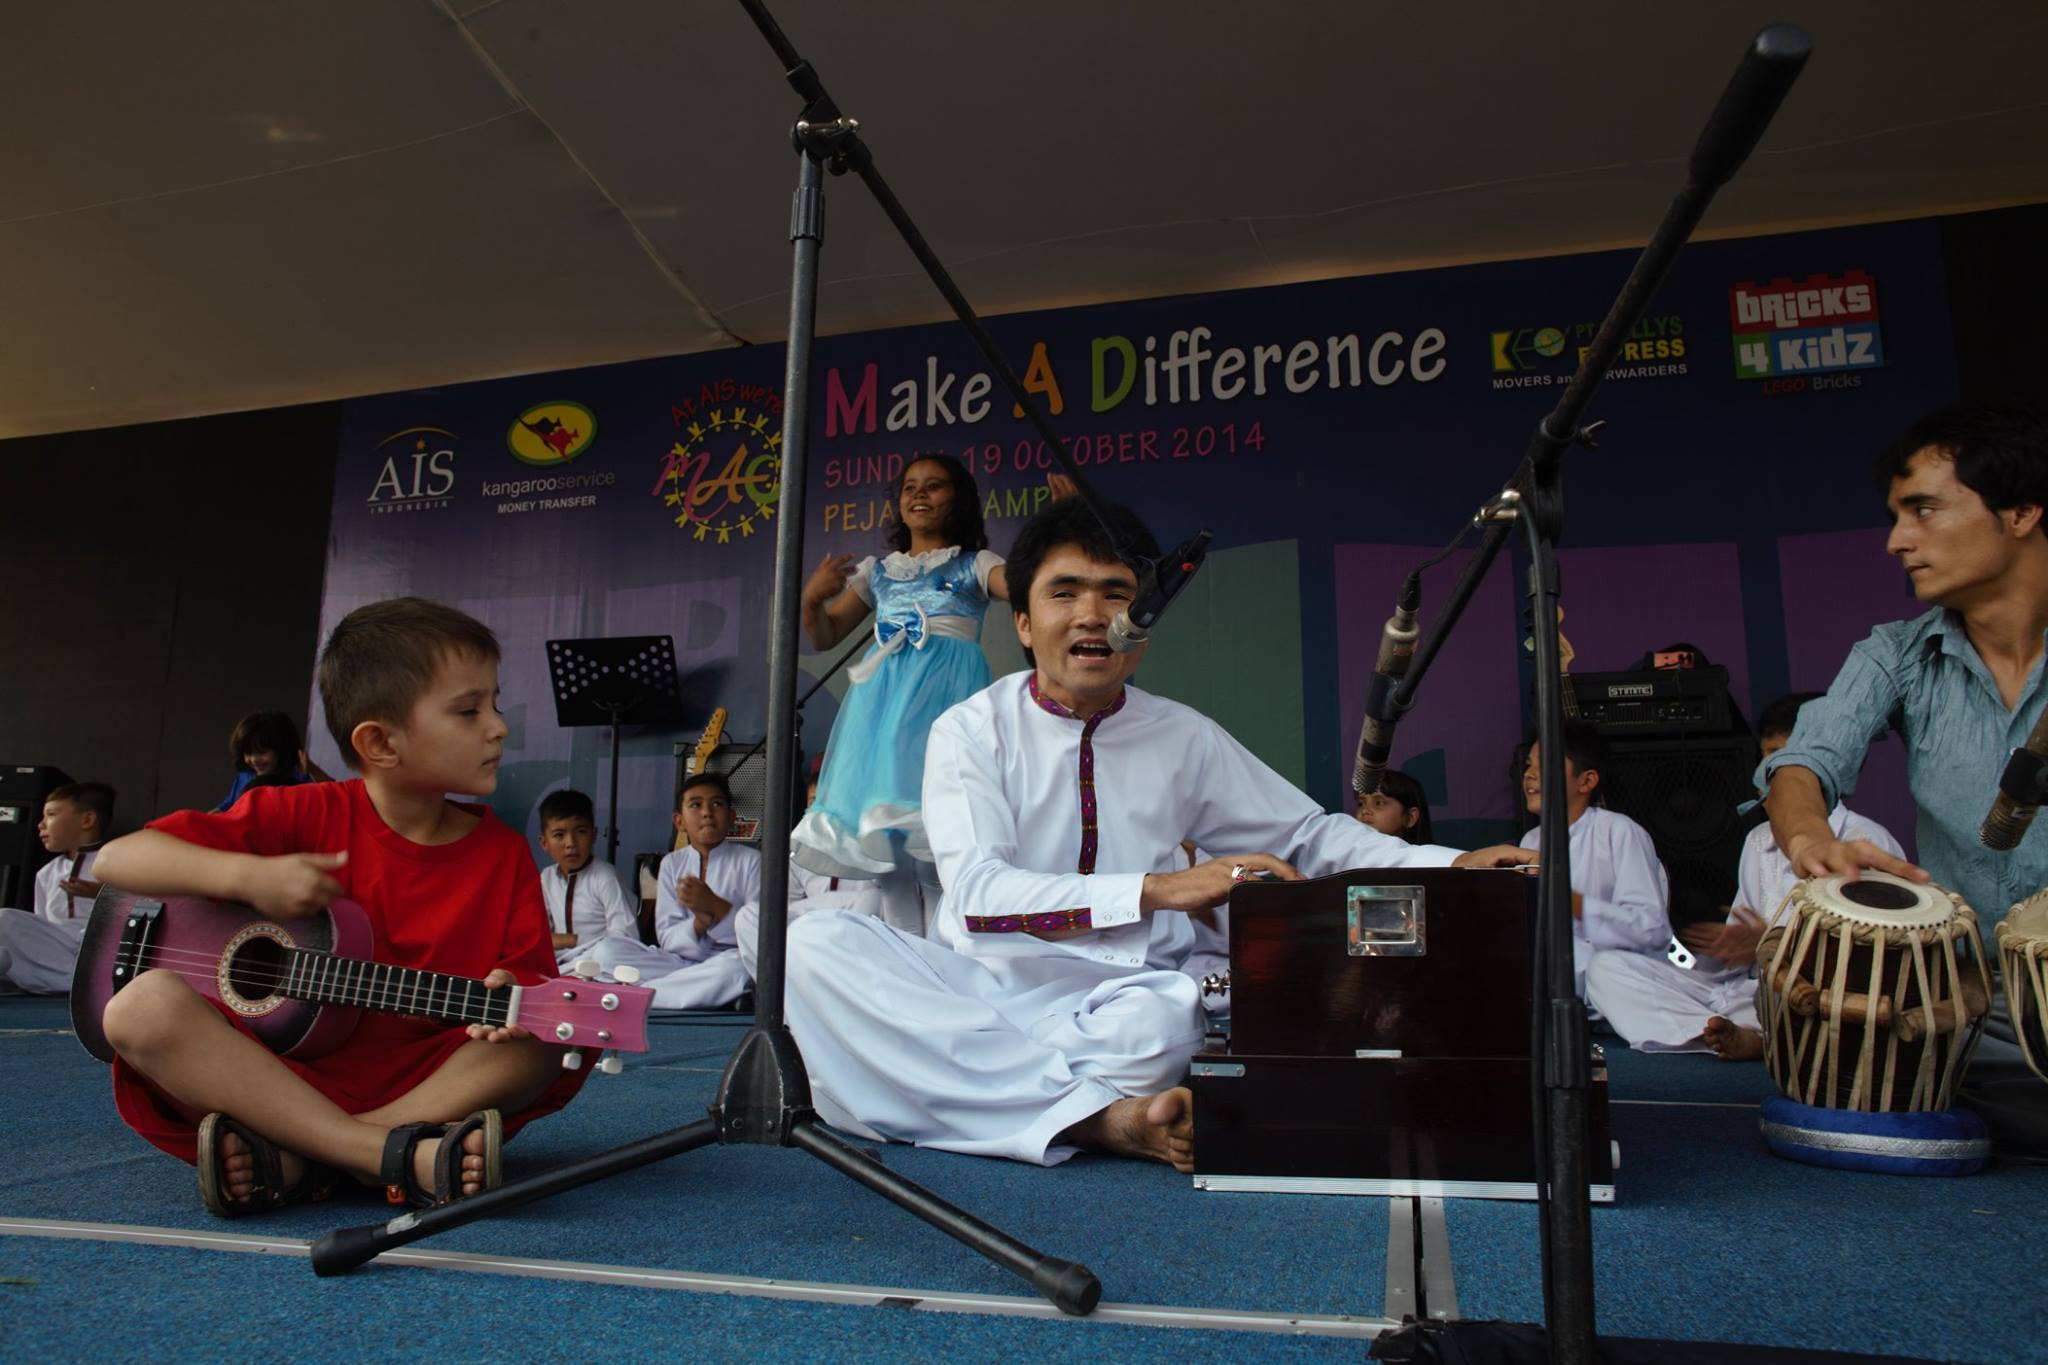 Aref Shadab was kidnapped by the Taliban after couple of months from this performance. Fortunately he was released, but his friend was killed.